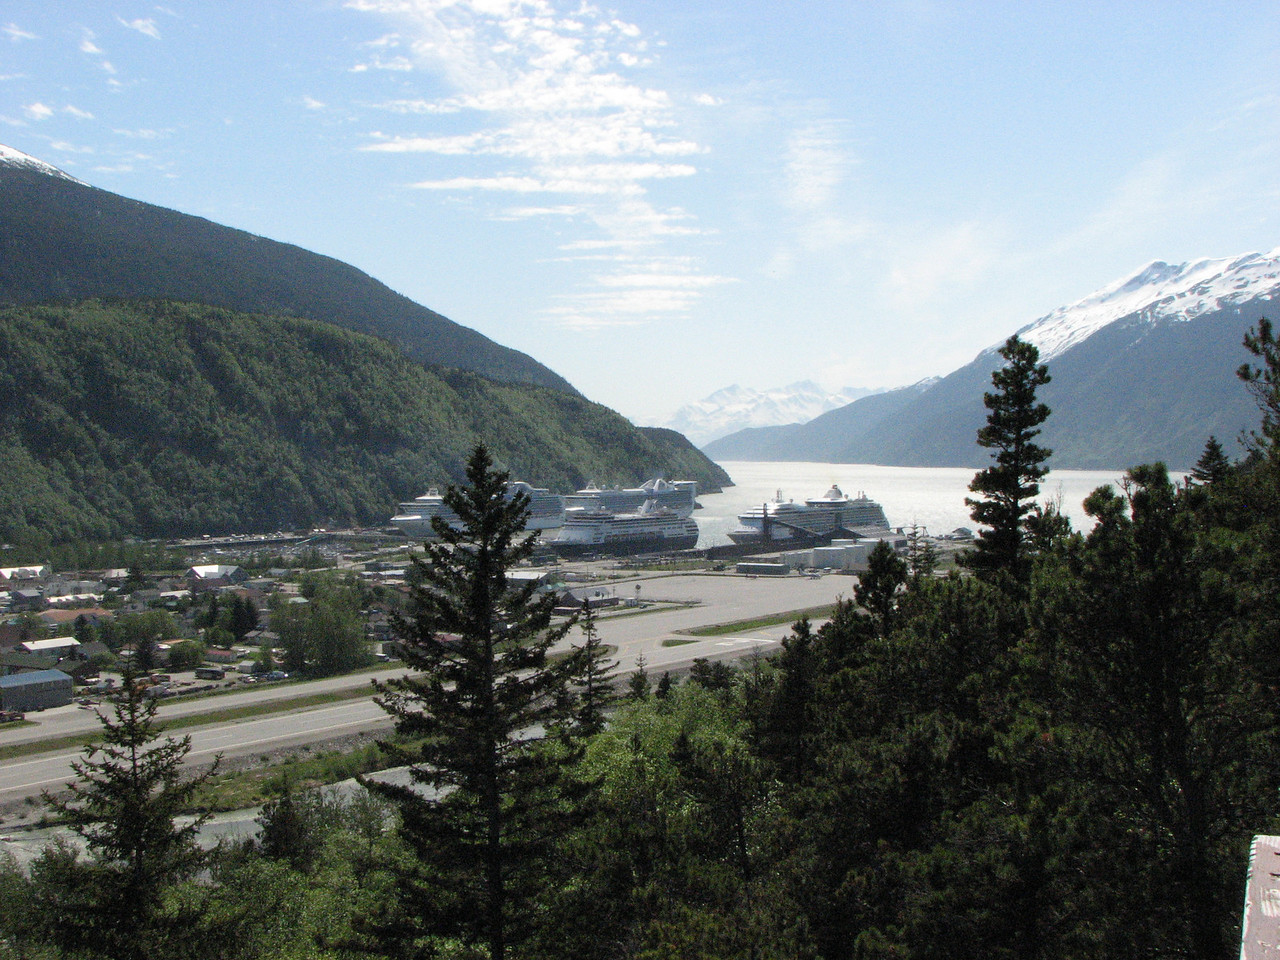 Golden Princess at Skagway - May 27. It is the one on the right at the Railroad Dock.